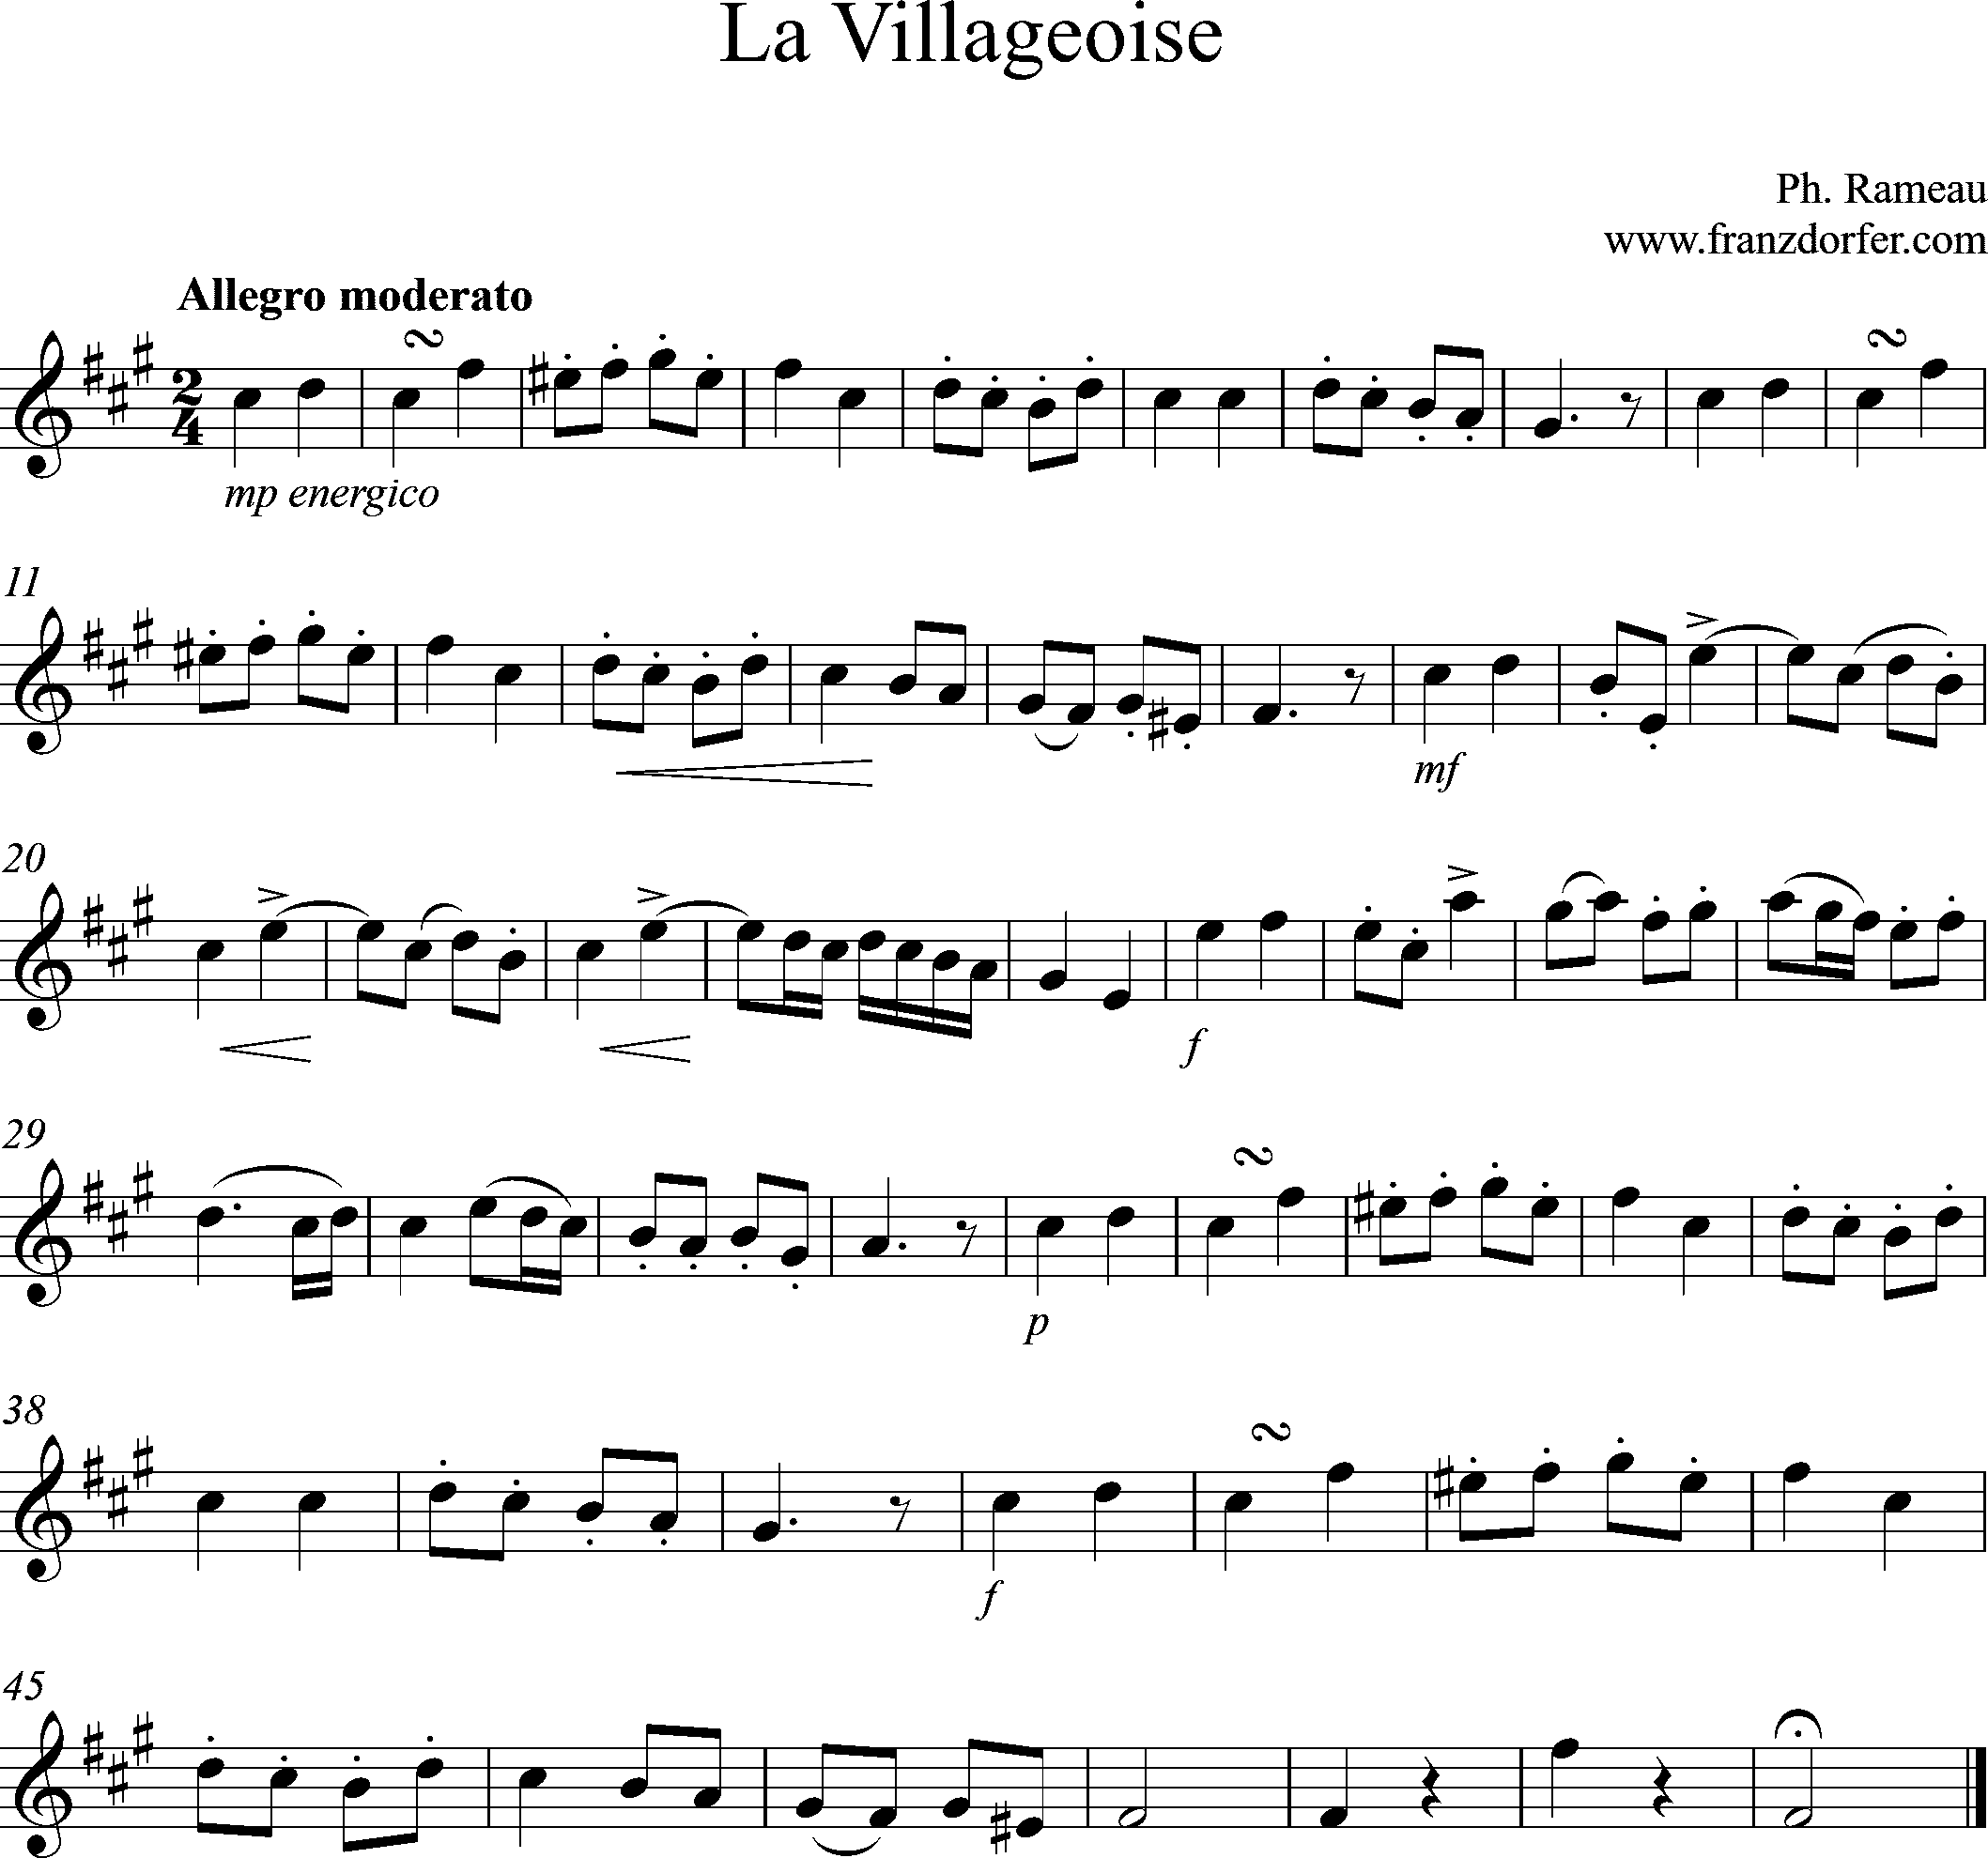 sheetmusic, La Villageoise